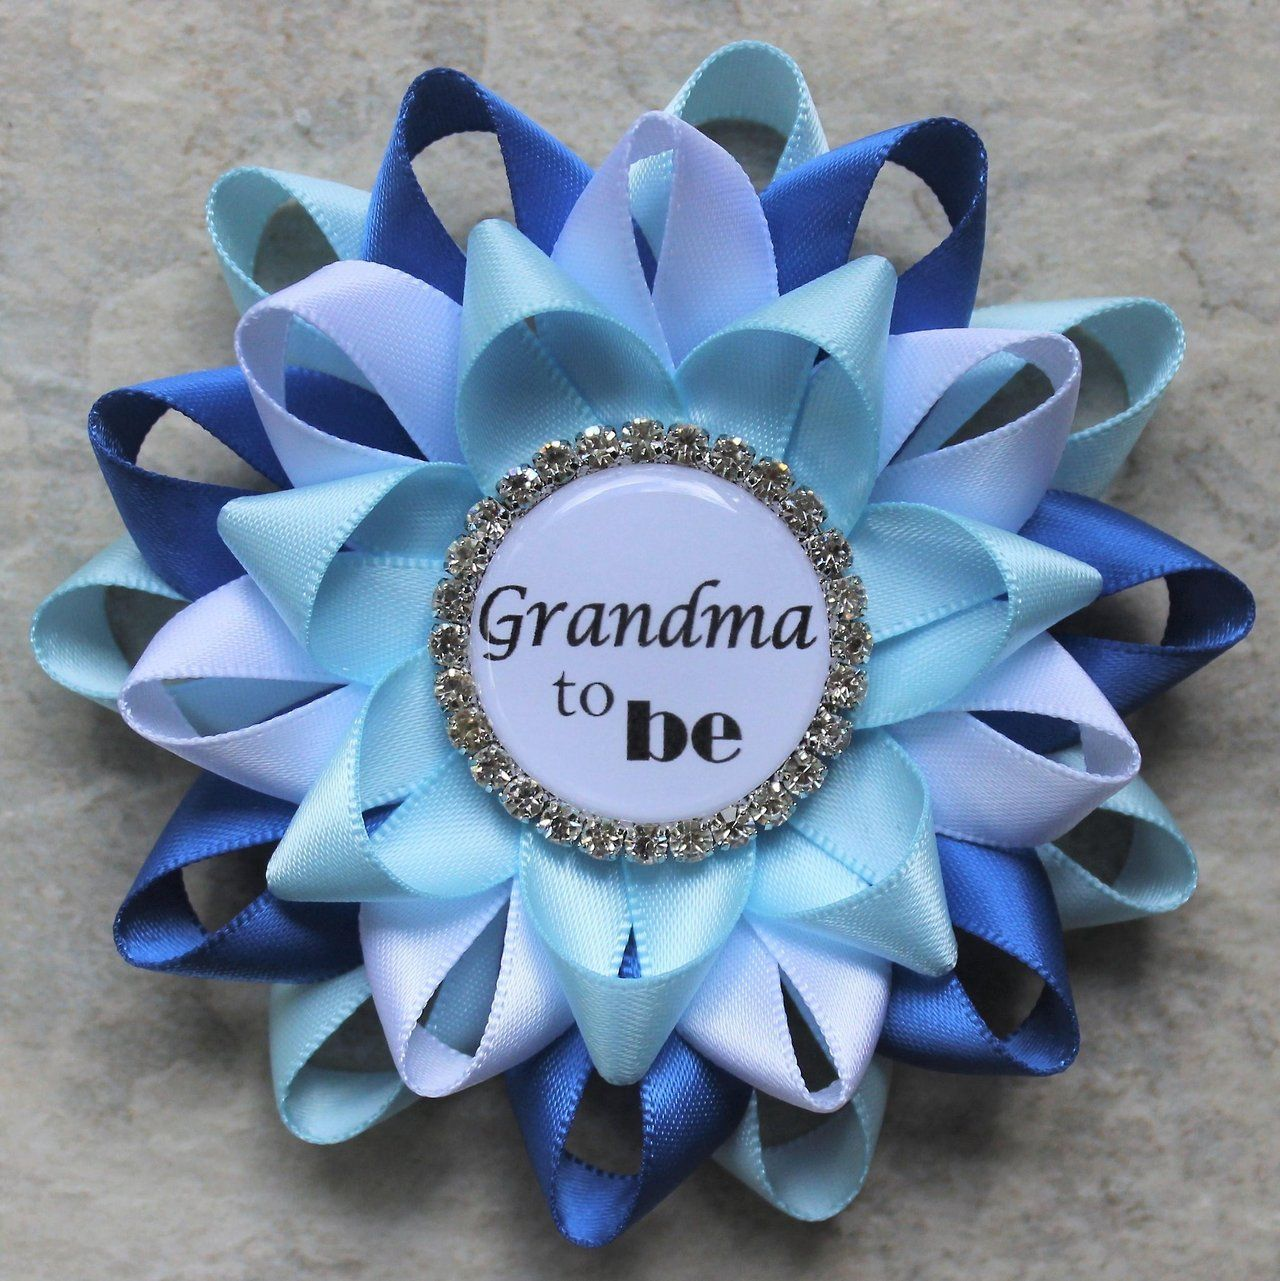 New Grandma Gift New Mommy Gift Personalized Baby Shower Corsage Pins Baby B https://t.co/iMBcwC9fuS #etsy #gift https://t.co/aRm2RkxLft